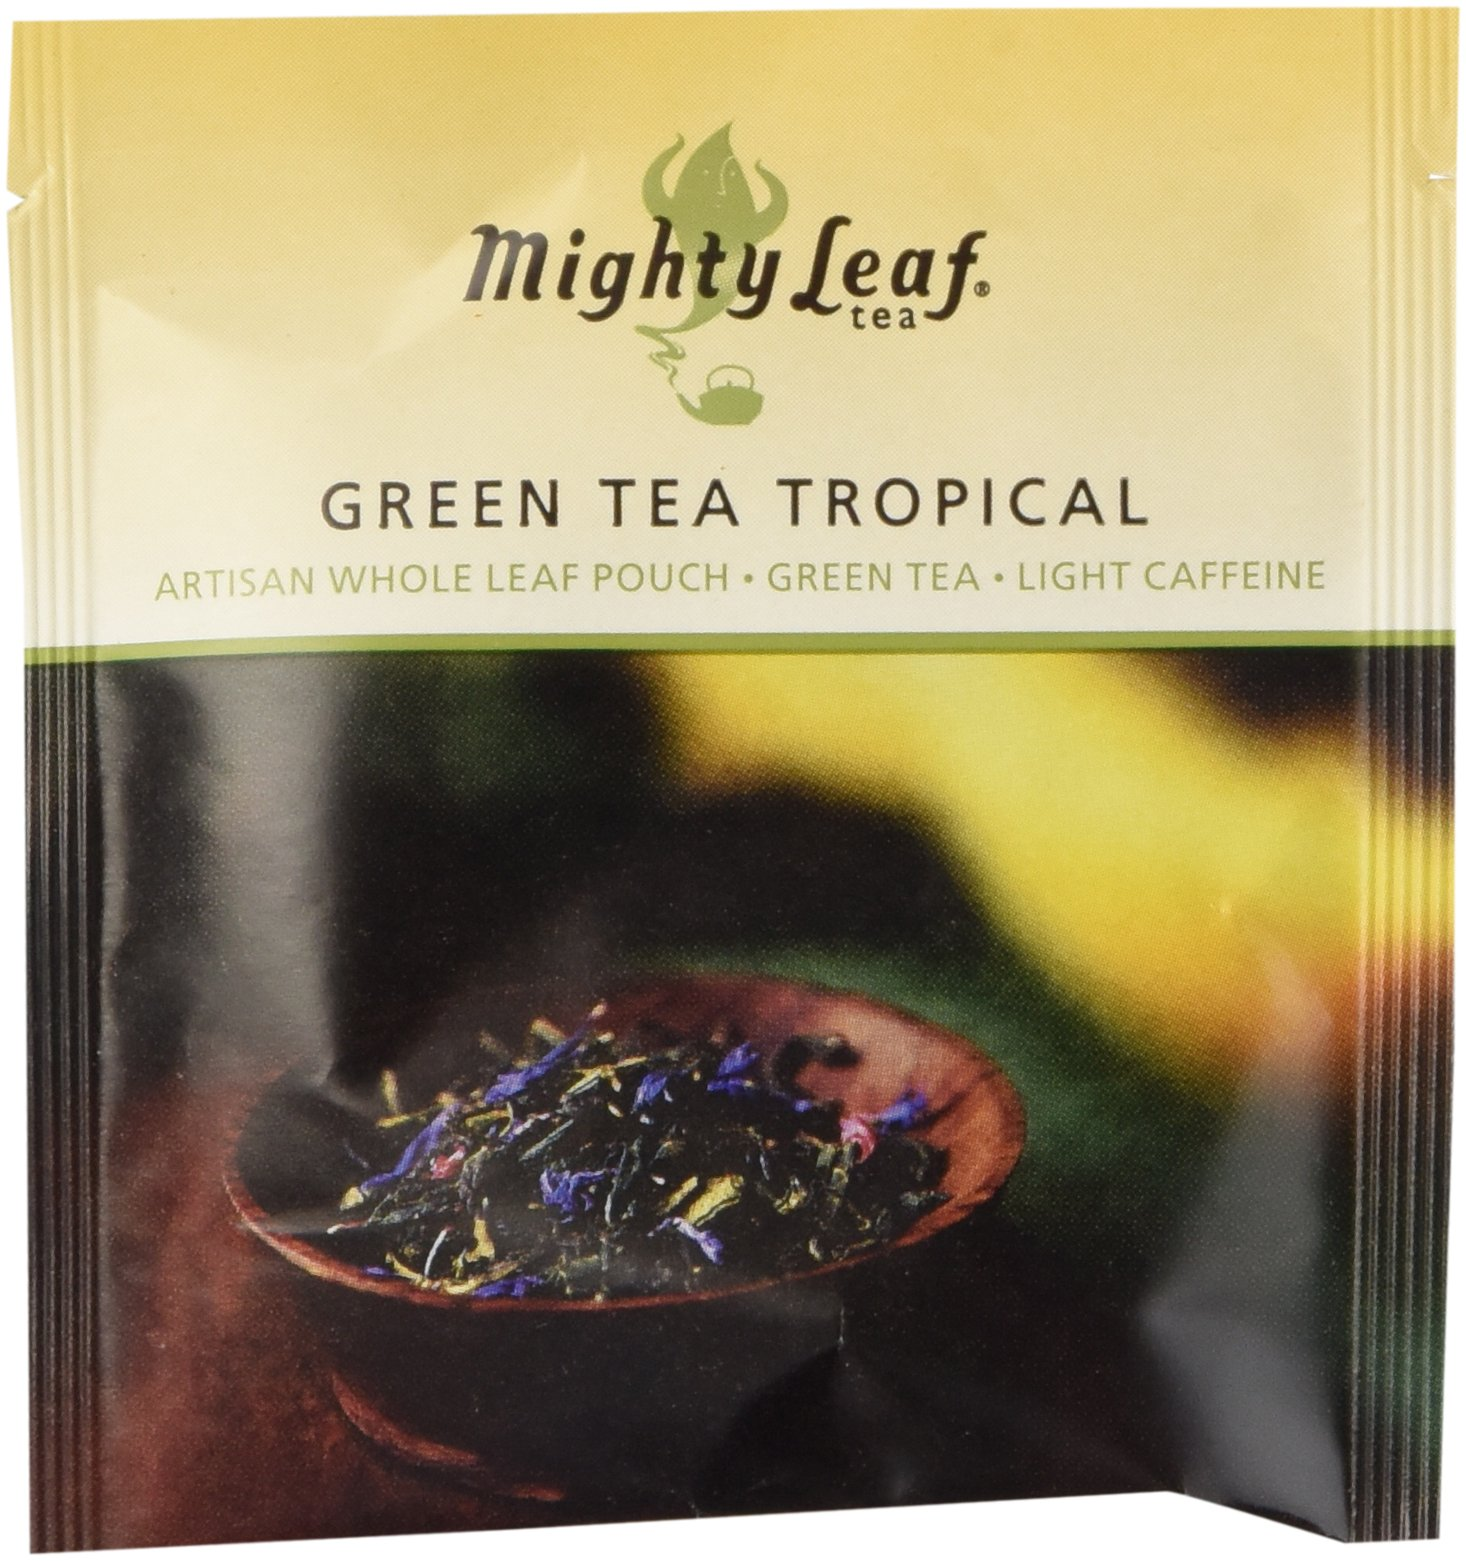 Mighty Leaf Green Tea Tropical 100ct. by Mighty Leaf Tea